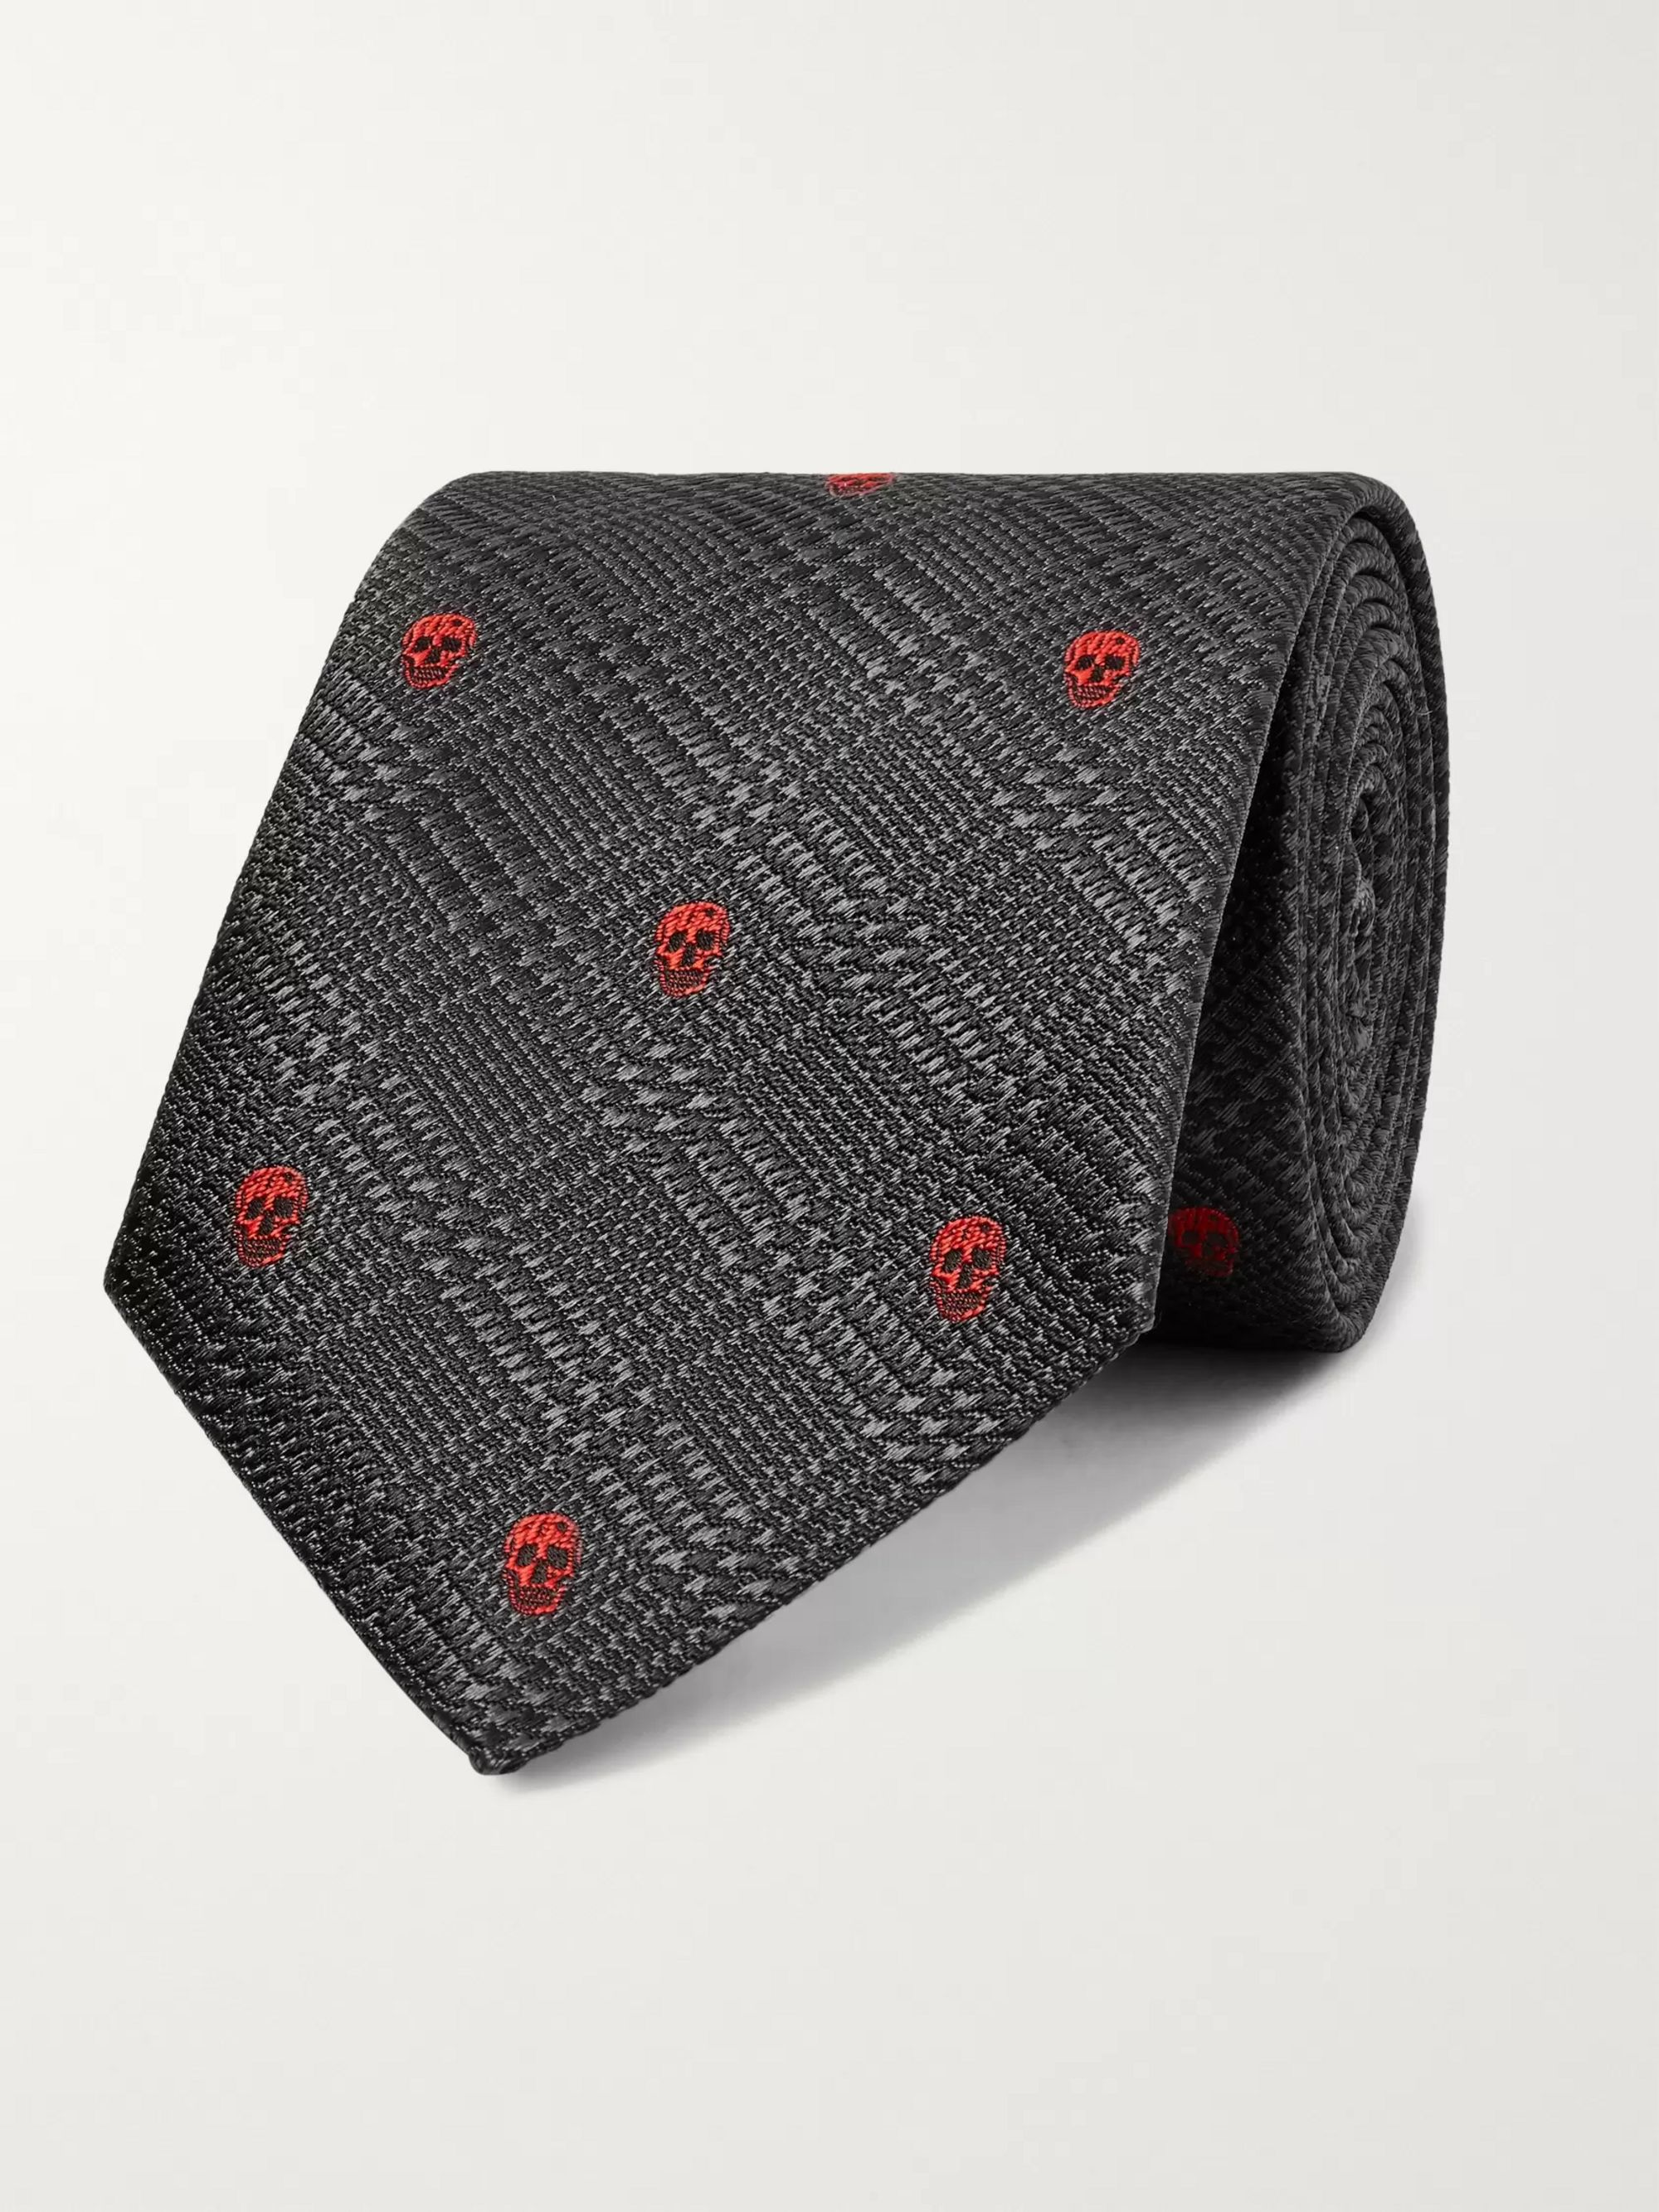 Alexander McQueen 7cm Embroidered Prince of Wales Checked Silk-Jacquard Tie